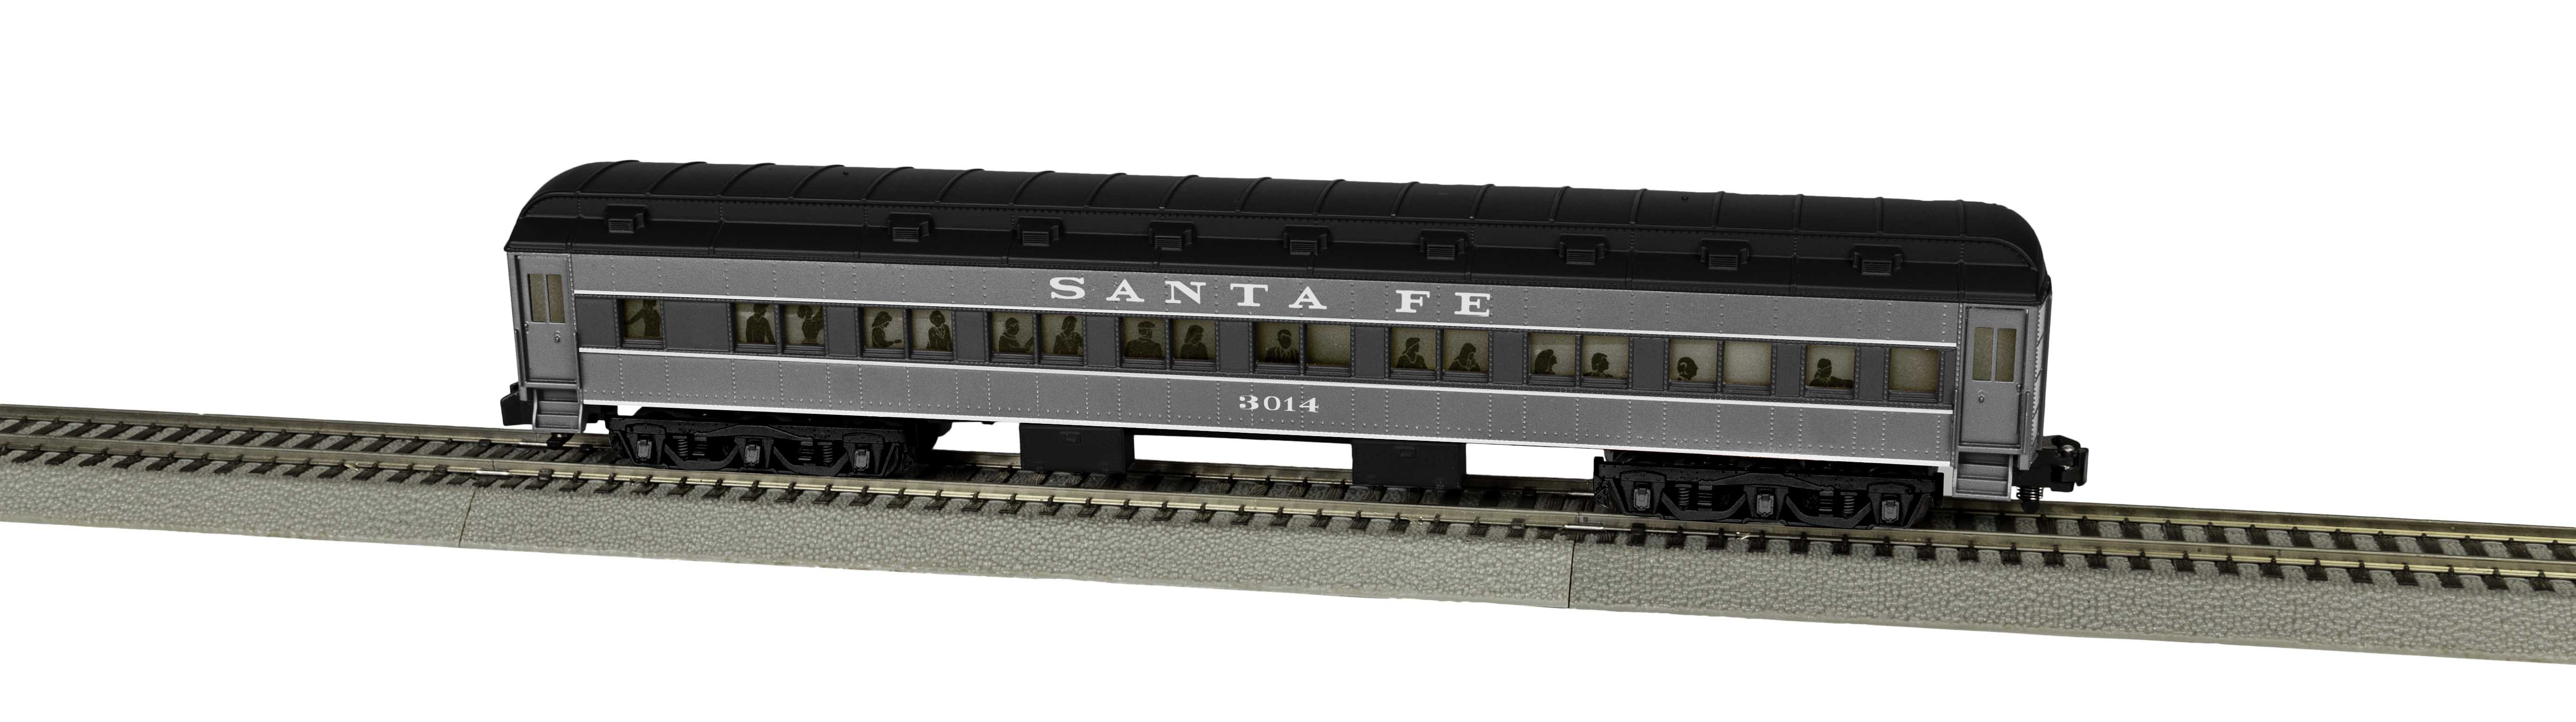 Lionel 2019251 S Santa Fe Heavyweight Coach #3014